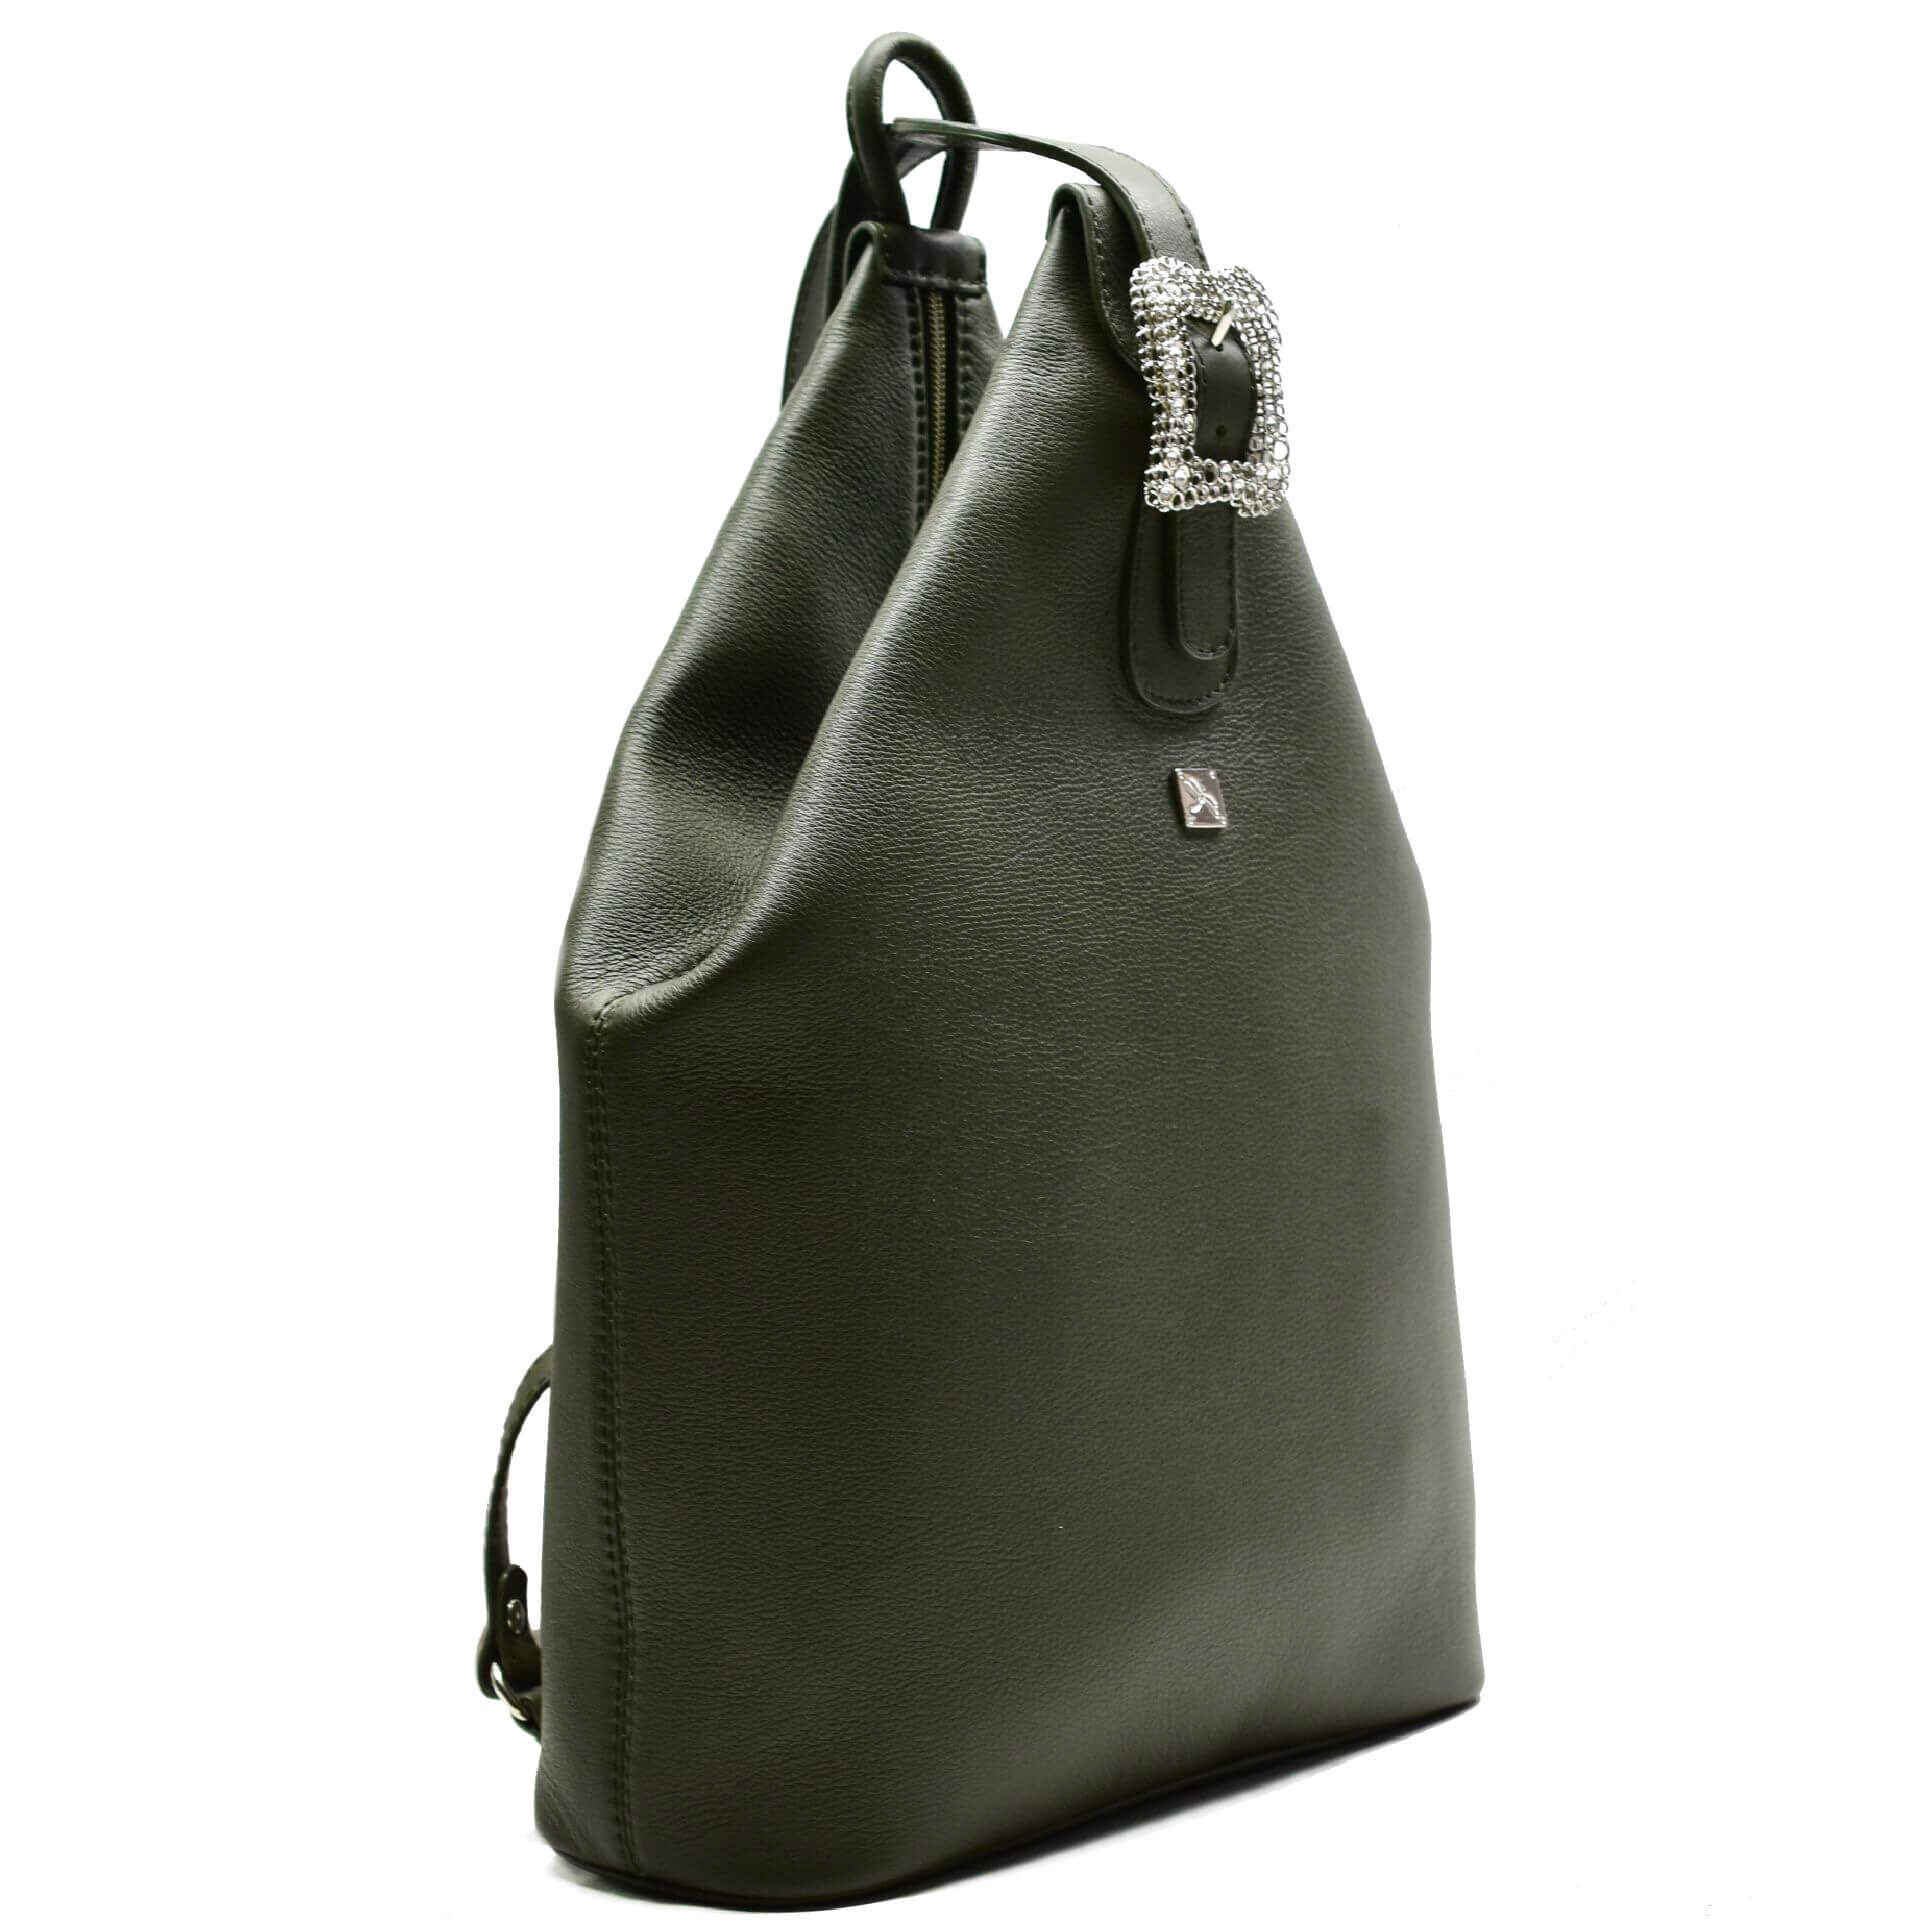 Green Leather Backpack. Mia